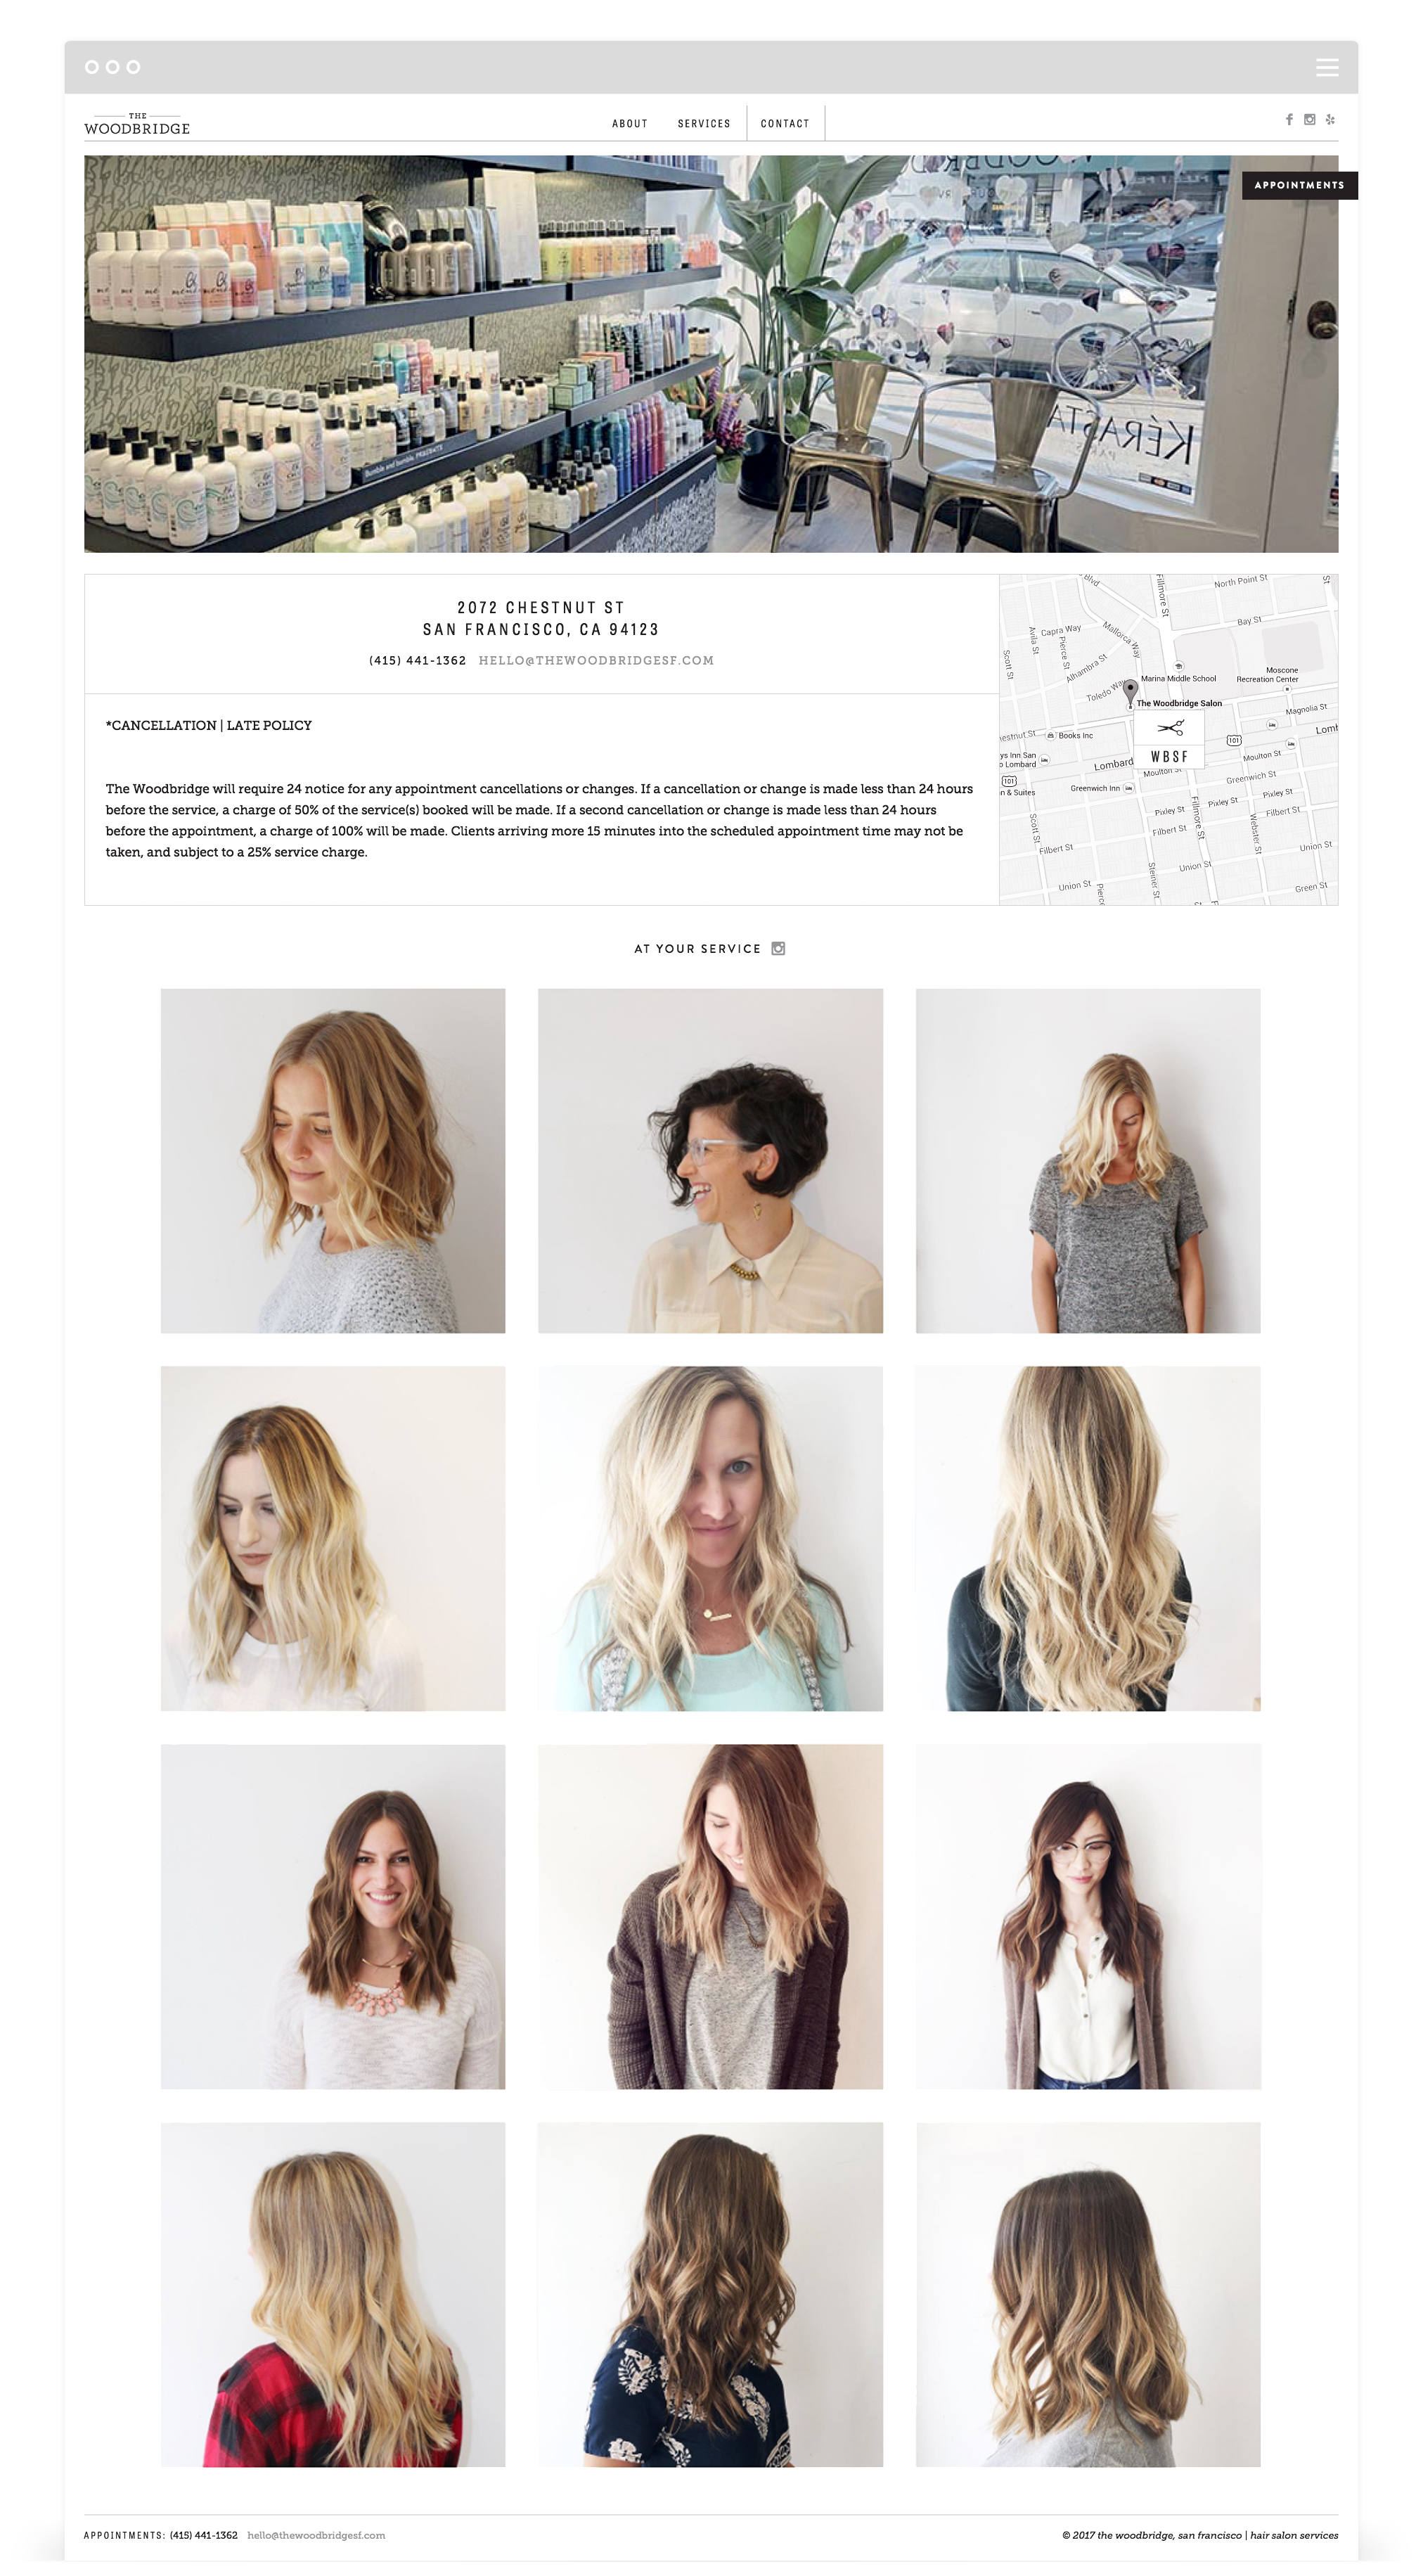 Second + West Website Development for The Woodbridge Salon